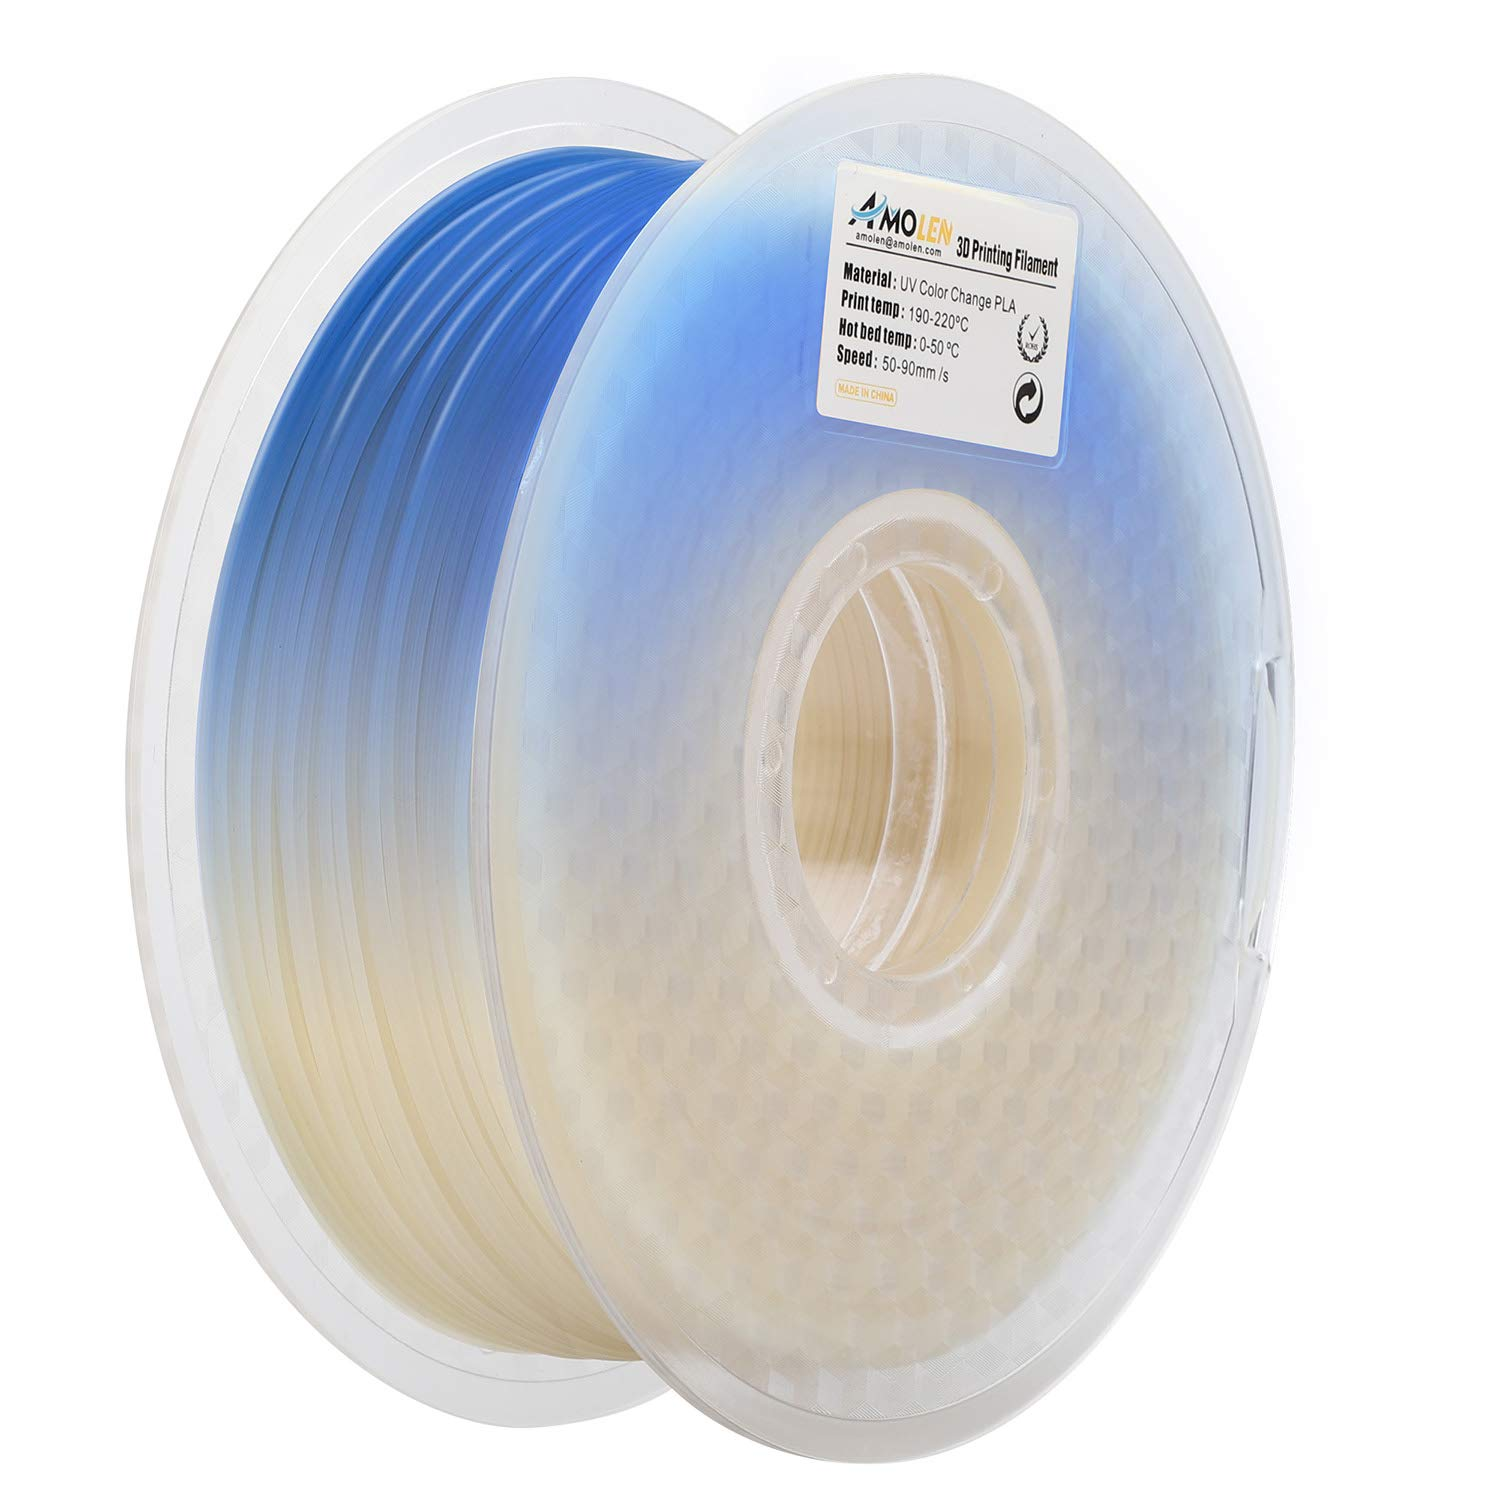 AMOLEN 3D Printer Filament, UV/Sunlight Color Change to Blue PLA Filament 1.75mm +/- 0.03 mm, 0.44 LBS(200G), includes Sample UV Color Change to Purple Filament.